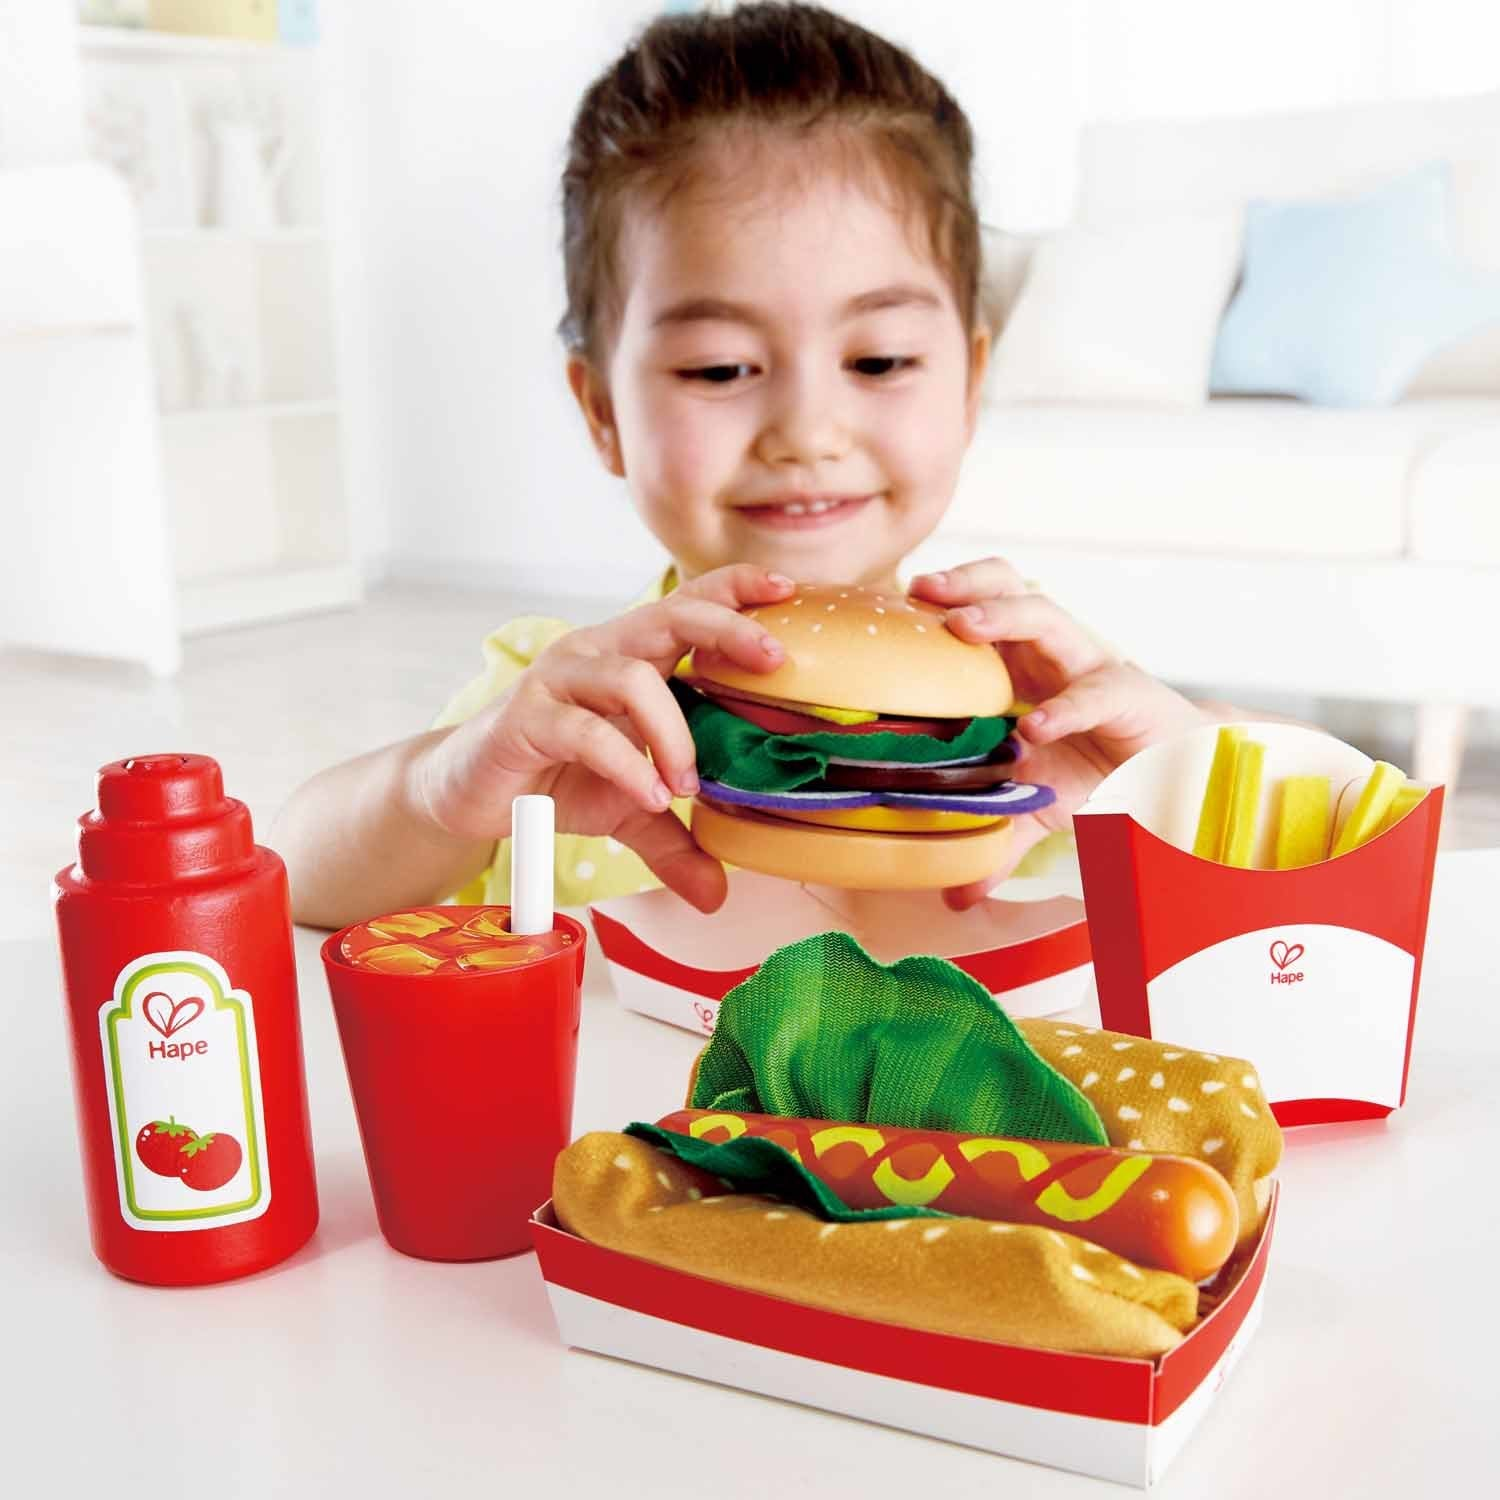 Hape: Fast Food - Roleplay Set